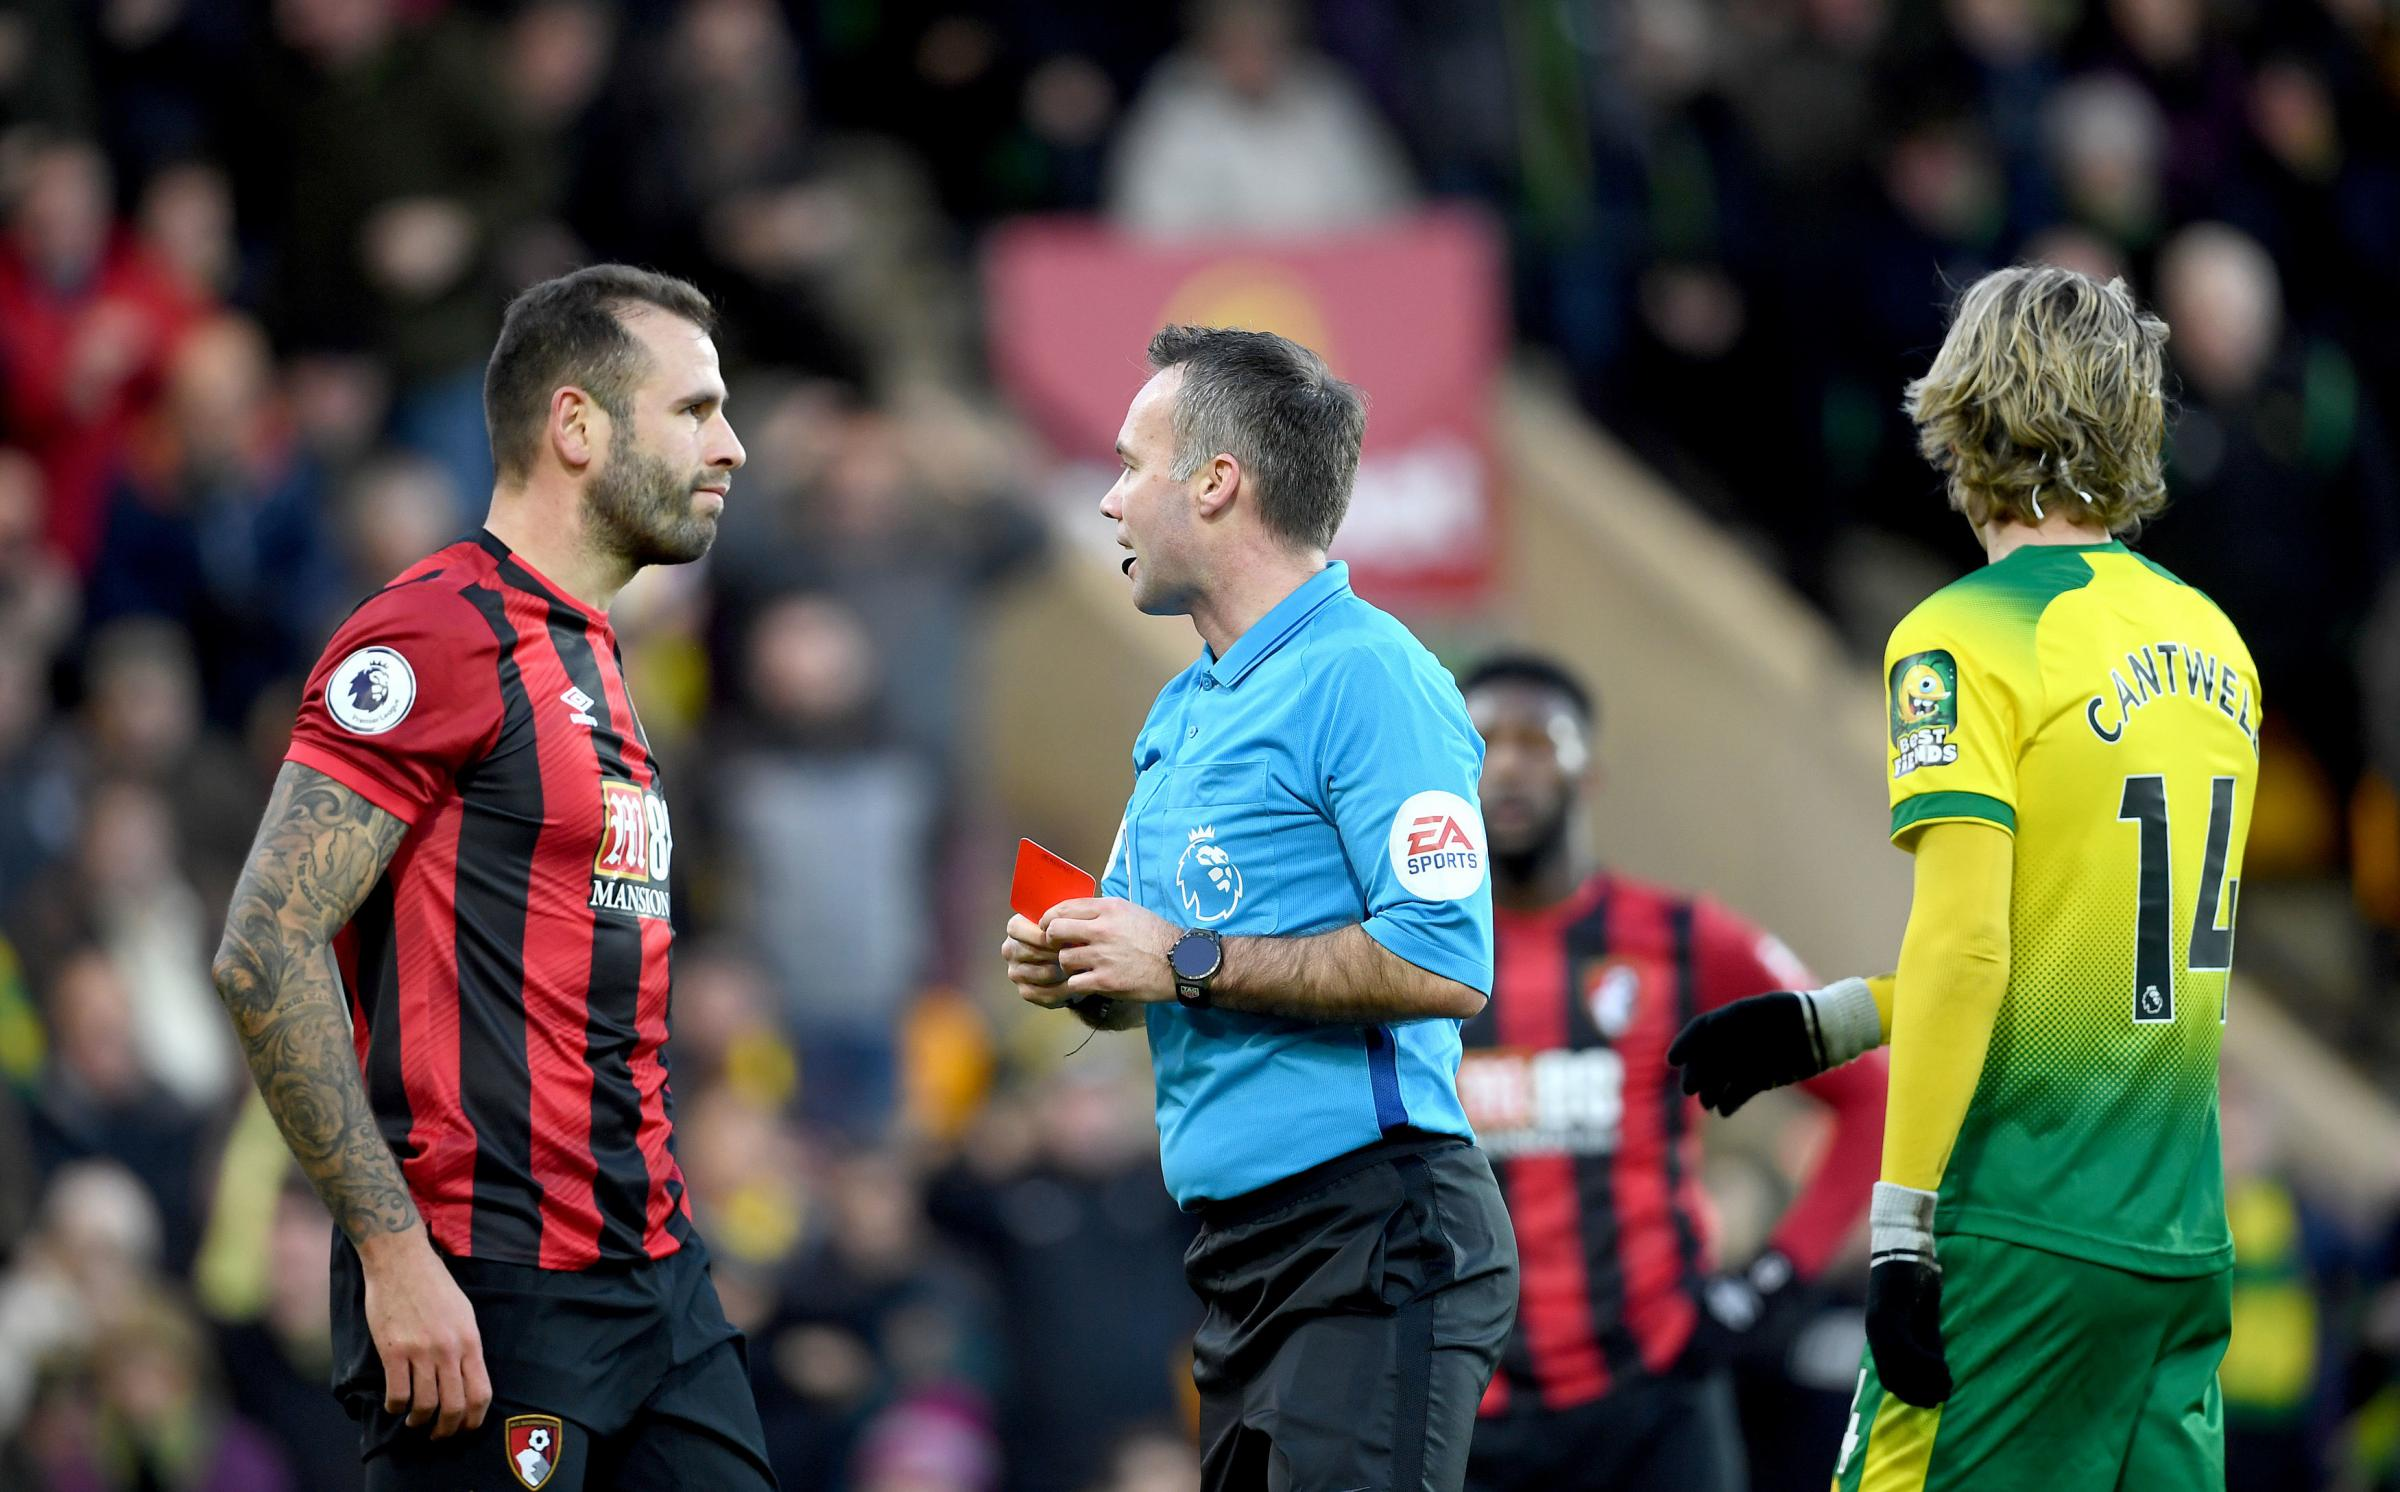 Bournemouth defender Steve Cook ruled out of Albion clash